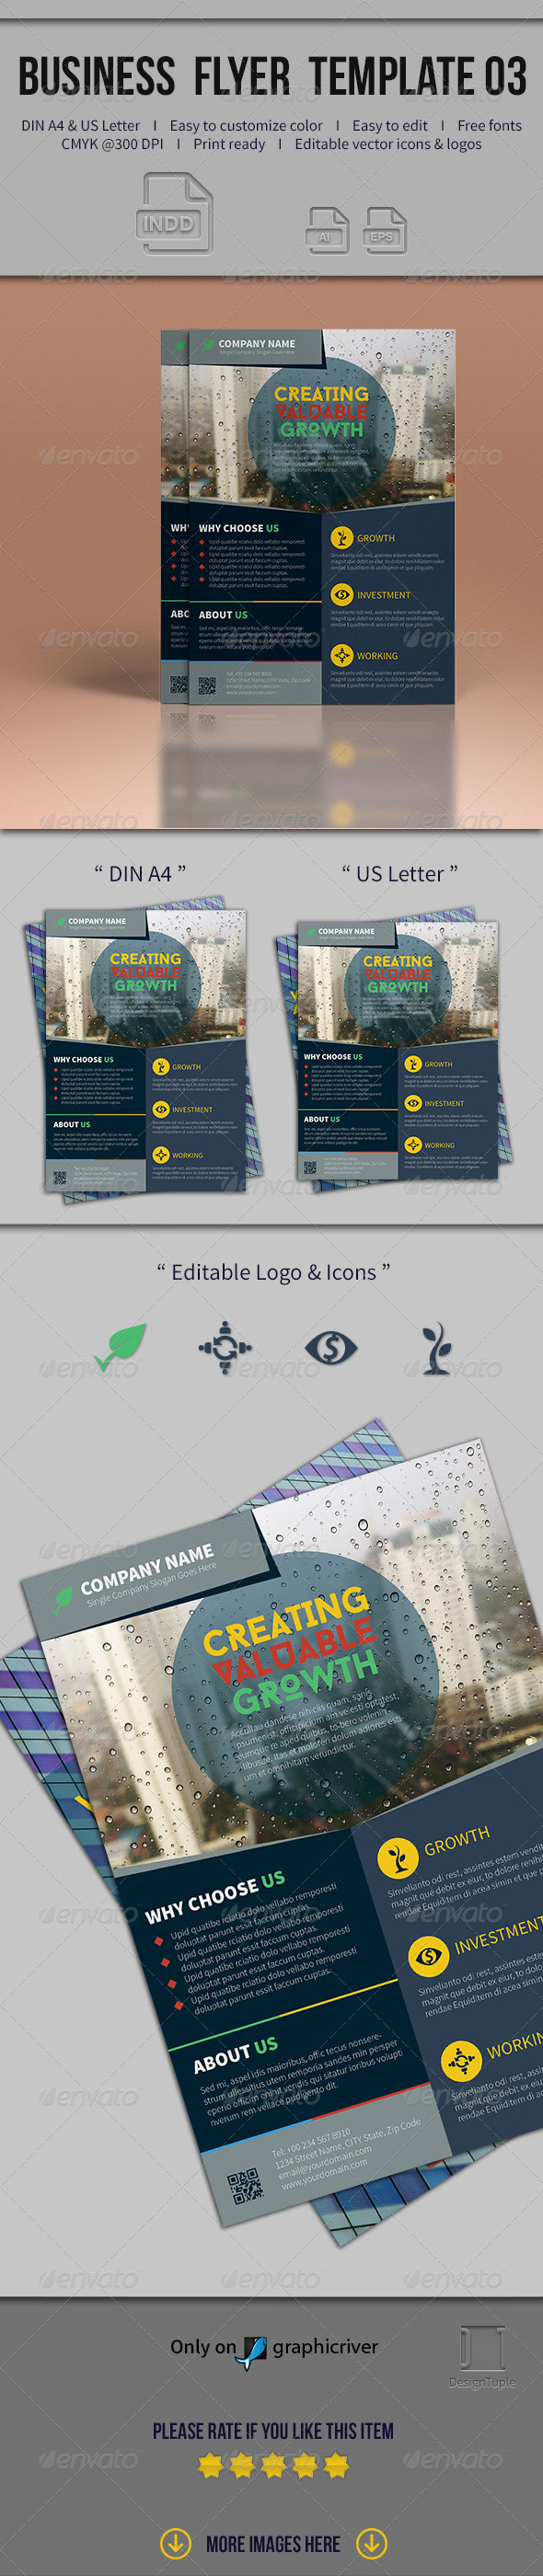 GraphicRiver Business Flyer Template 03 7978739